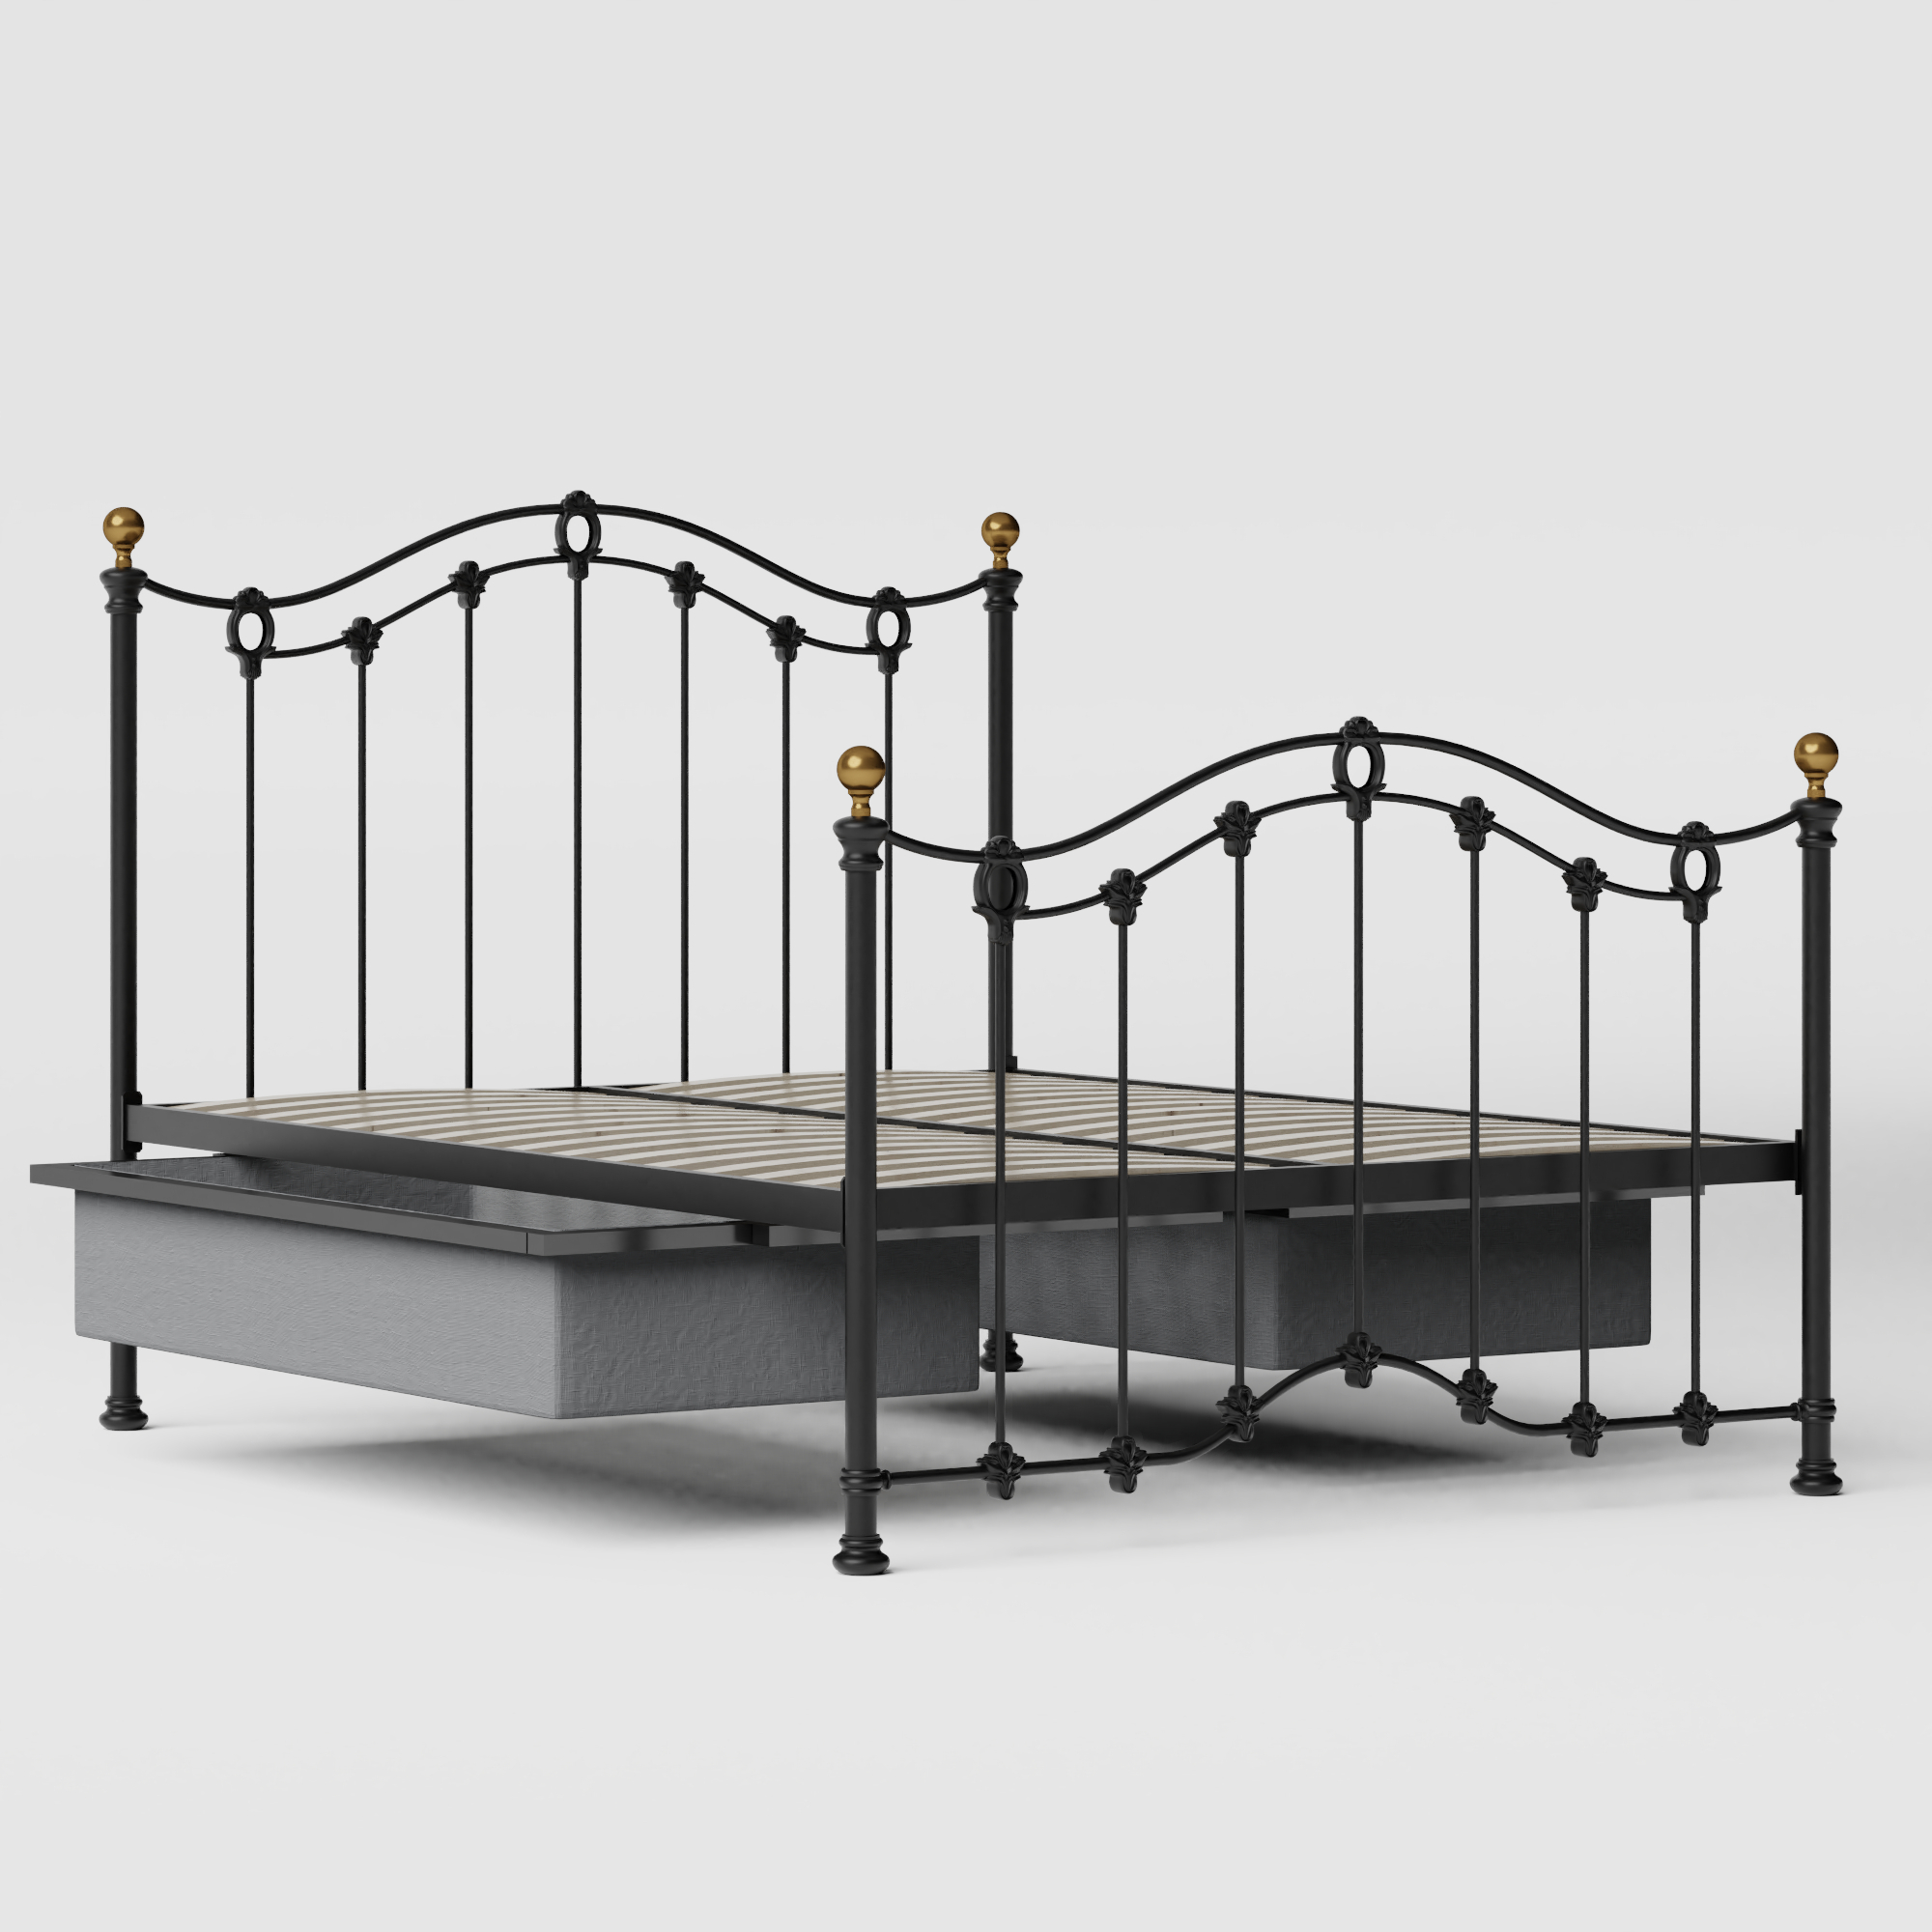 Clarina iron/metal bed in black with drawers